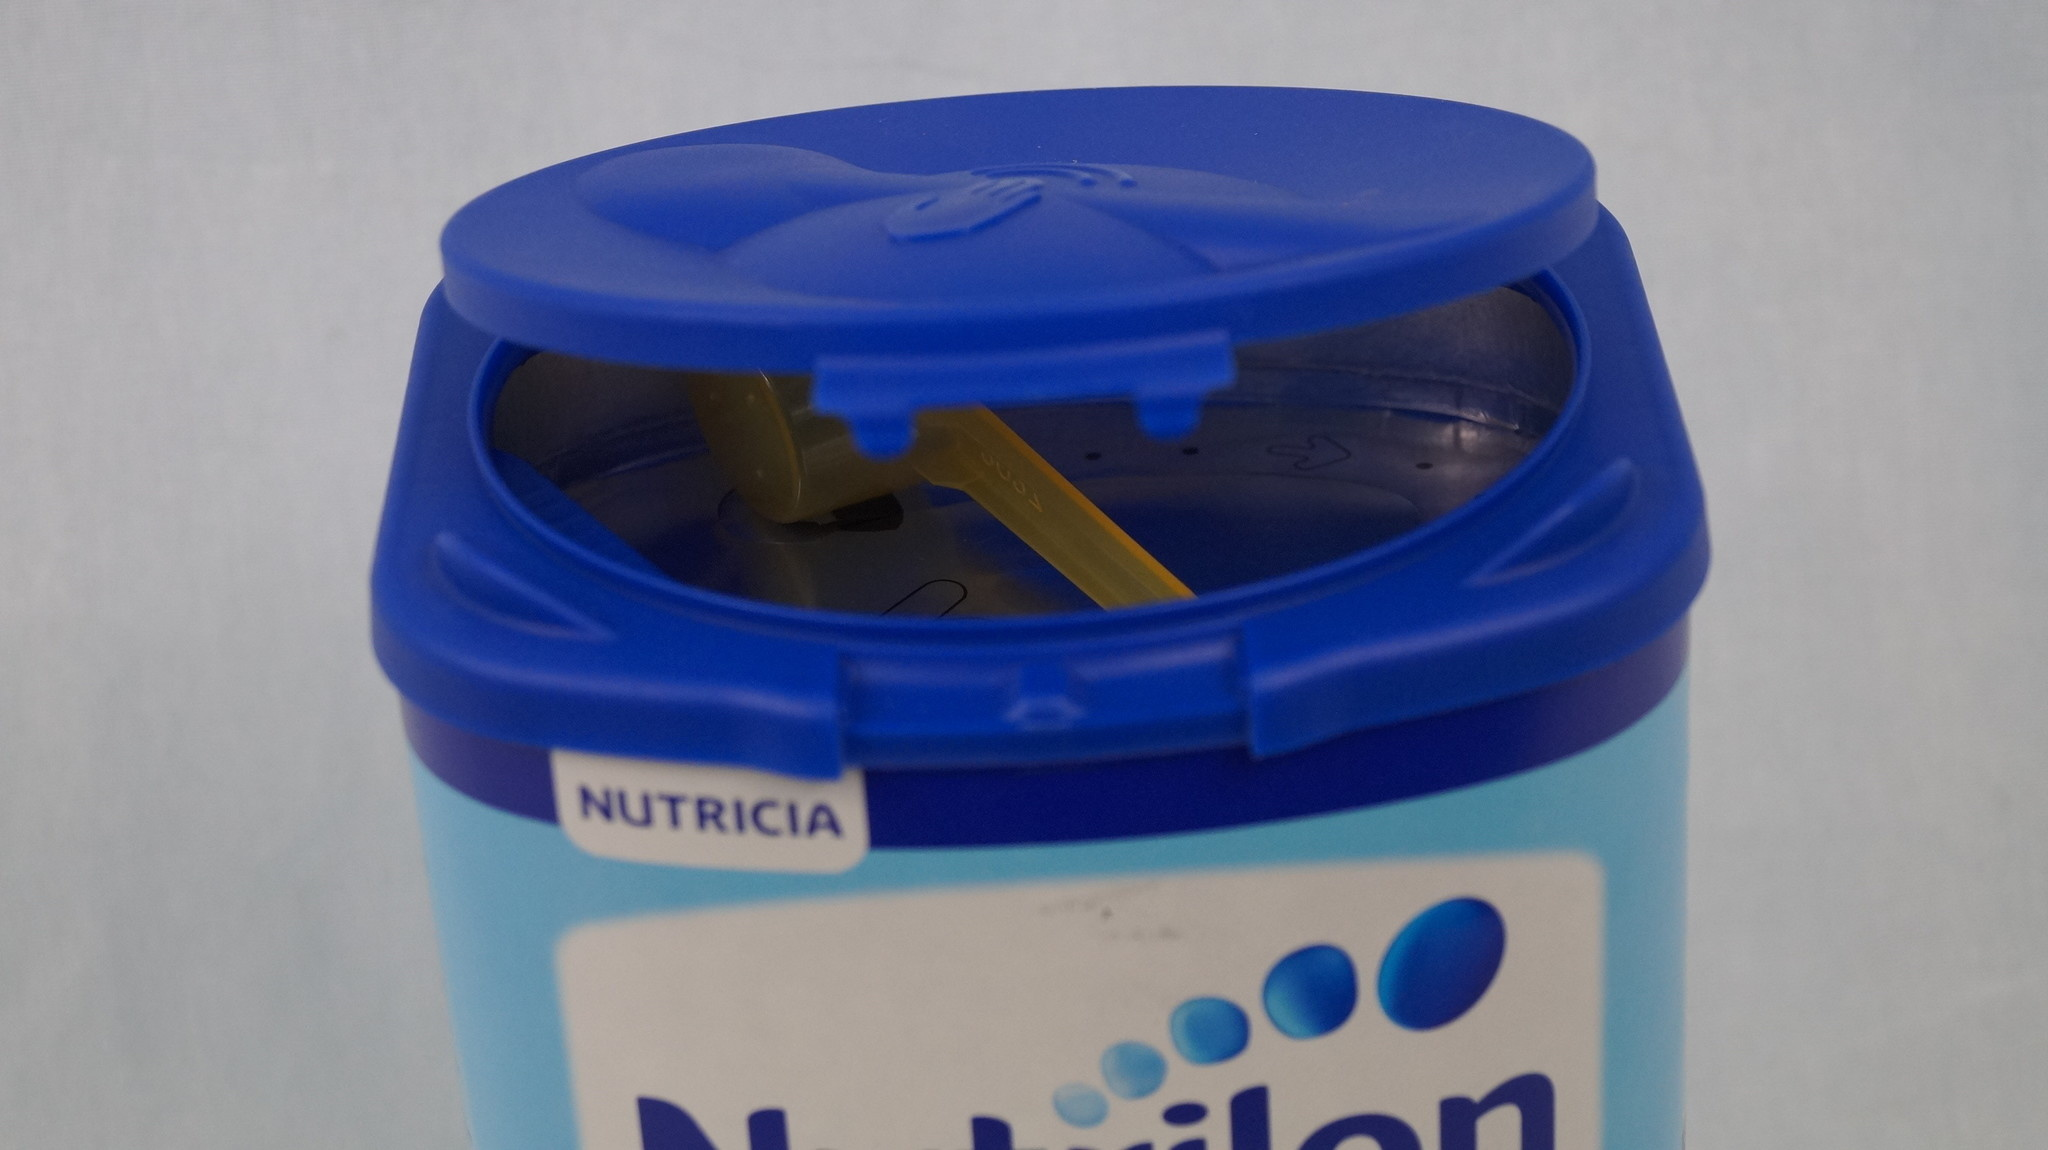 Standard 1 Infant formula - 800 grams. - DAMAGED PACKAGING